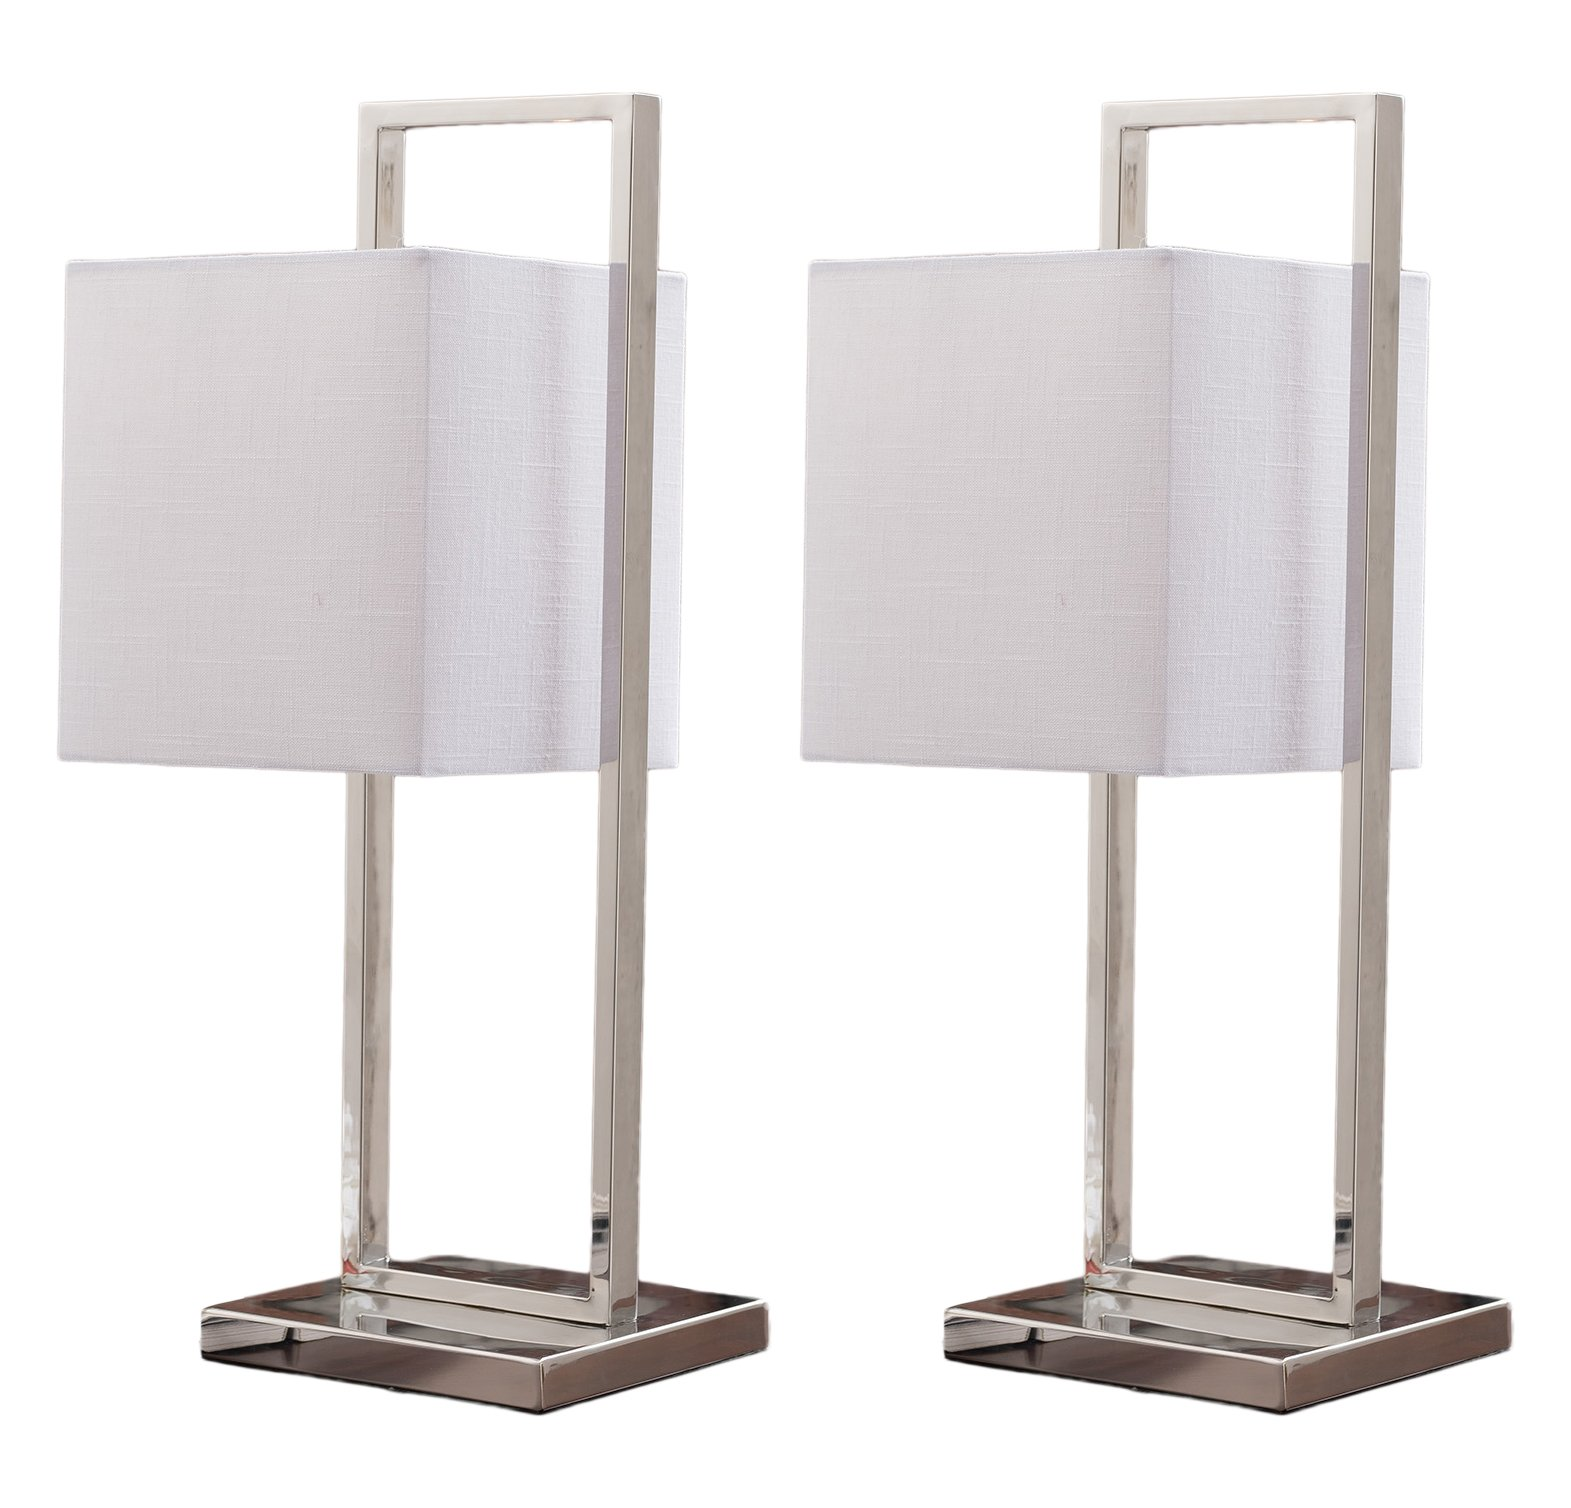 Kings Brand Nicksville Stainless Steel With White Fabric Shade Square Table Lamps, Set of 2